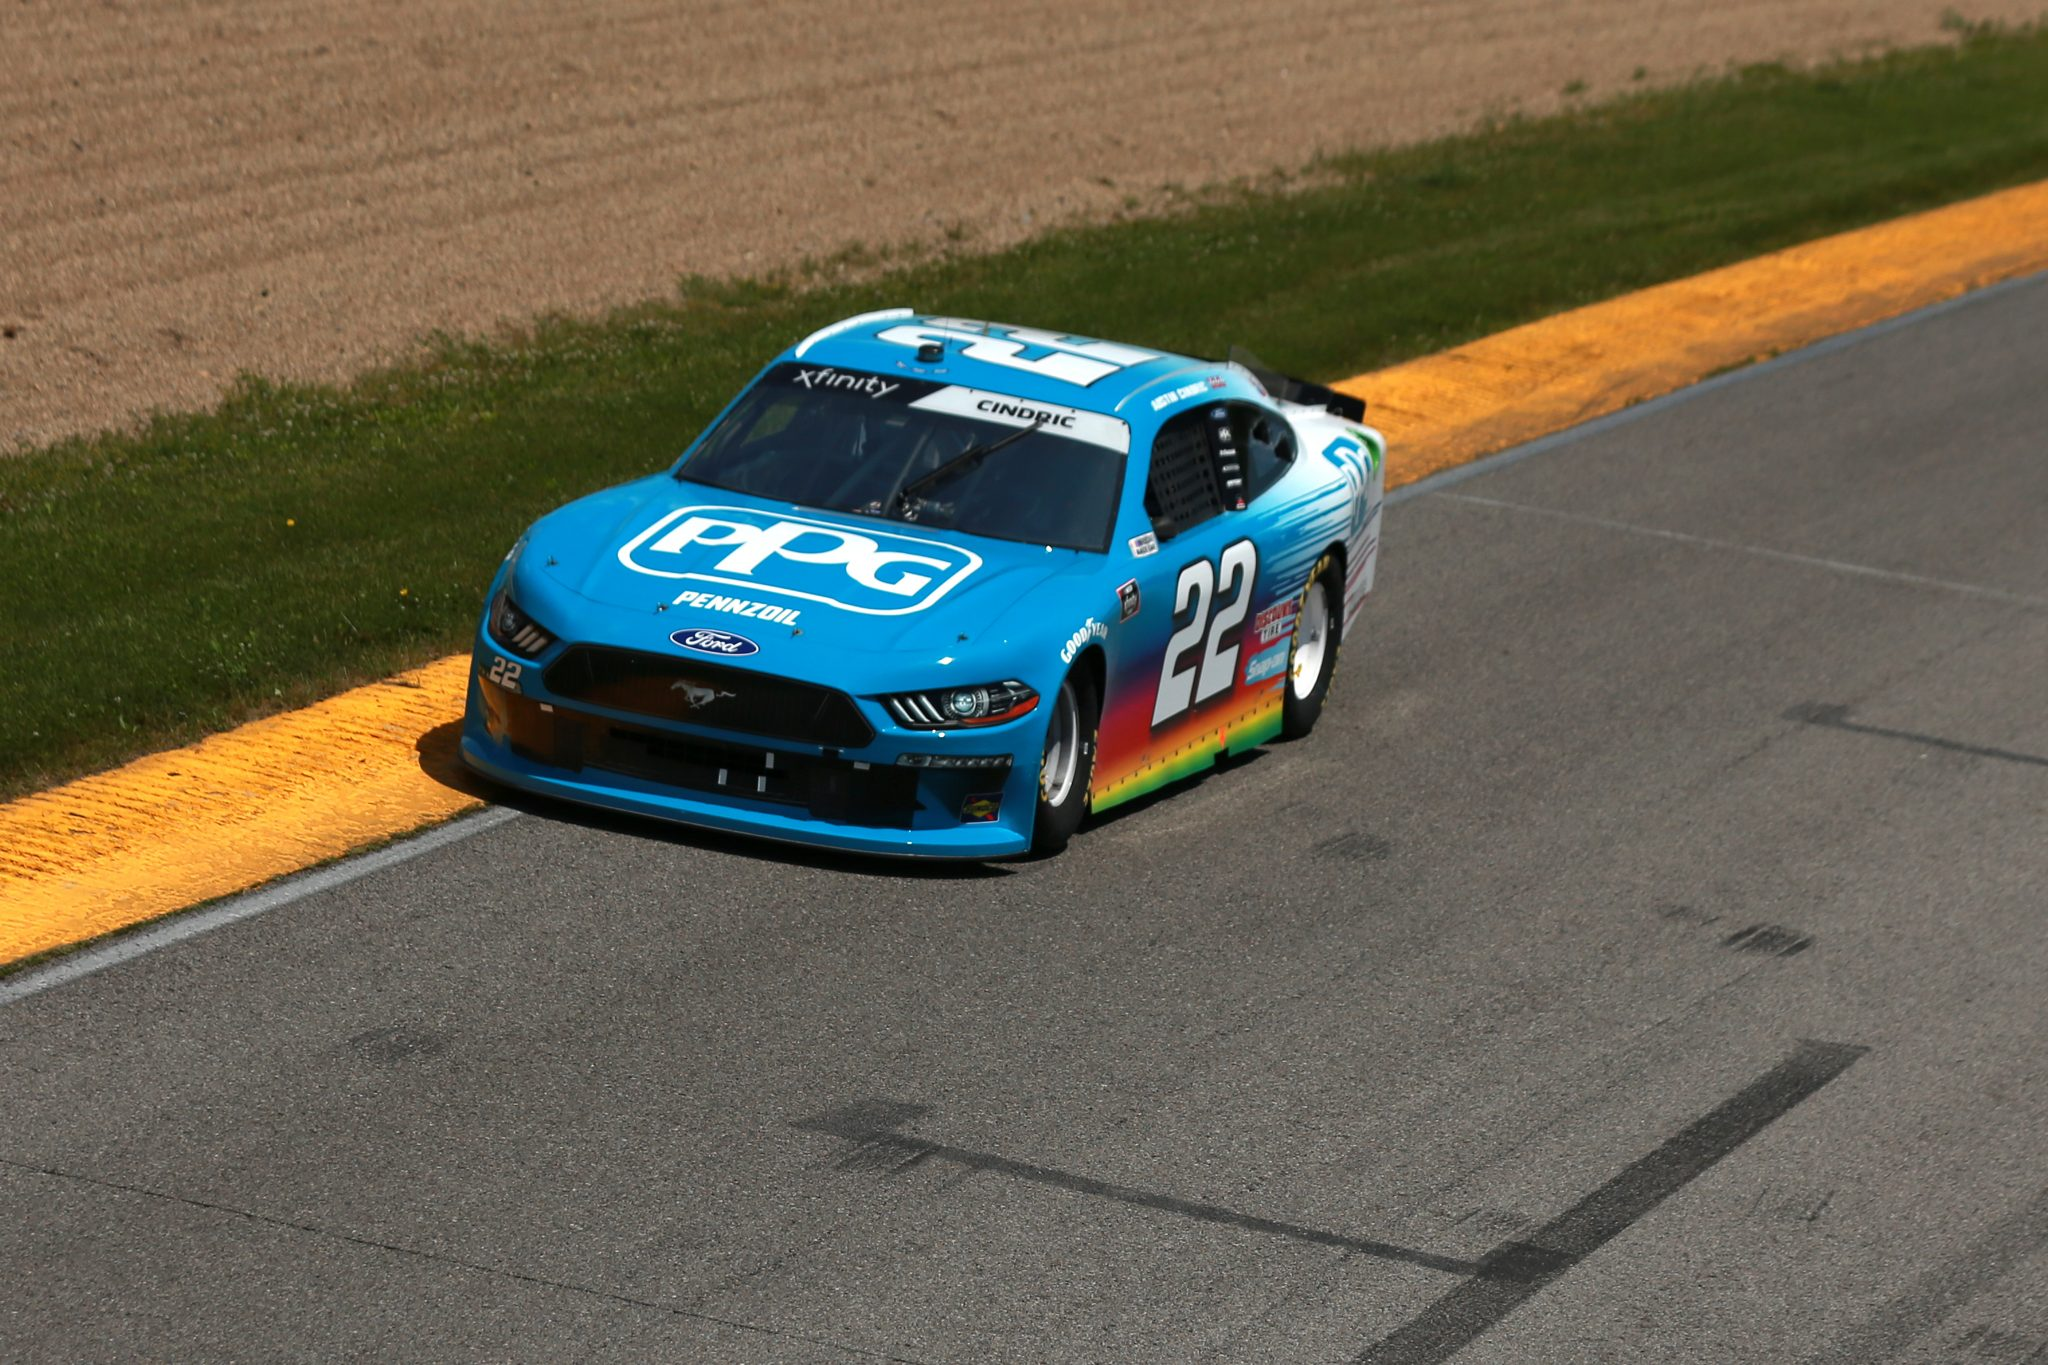 LEXINGTON, OHIO - JUNE 05: Austin Cindric, driver of the #22 PPG Ford, drives during the NASCAR Xfinity Series B&L Transport 170 at Mid-Ohio Sports Car Course on June 05, 2021 in Lexington, Ohio. (Photo by Sean Gardner/Getty Images) | Getty Images